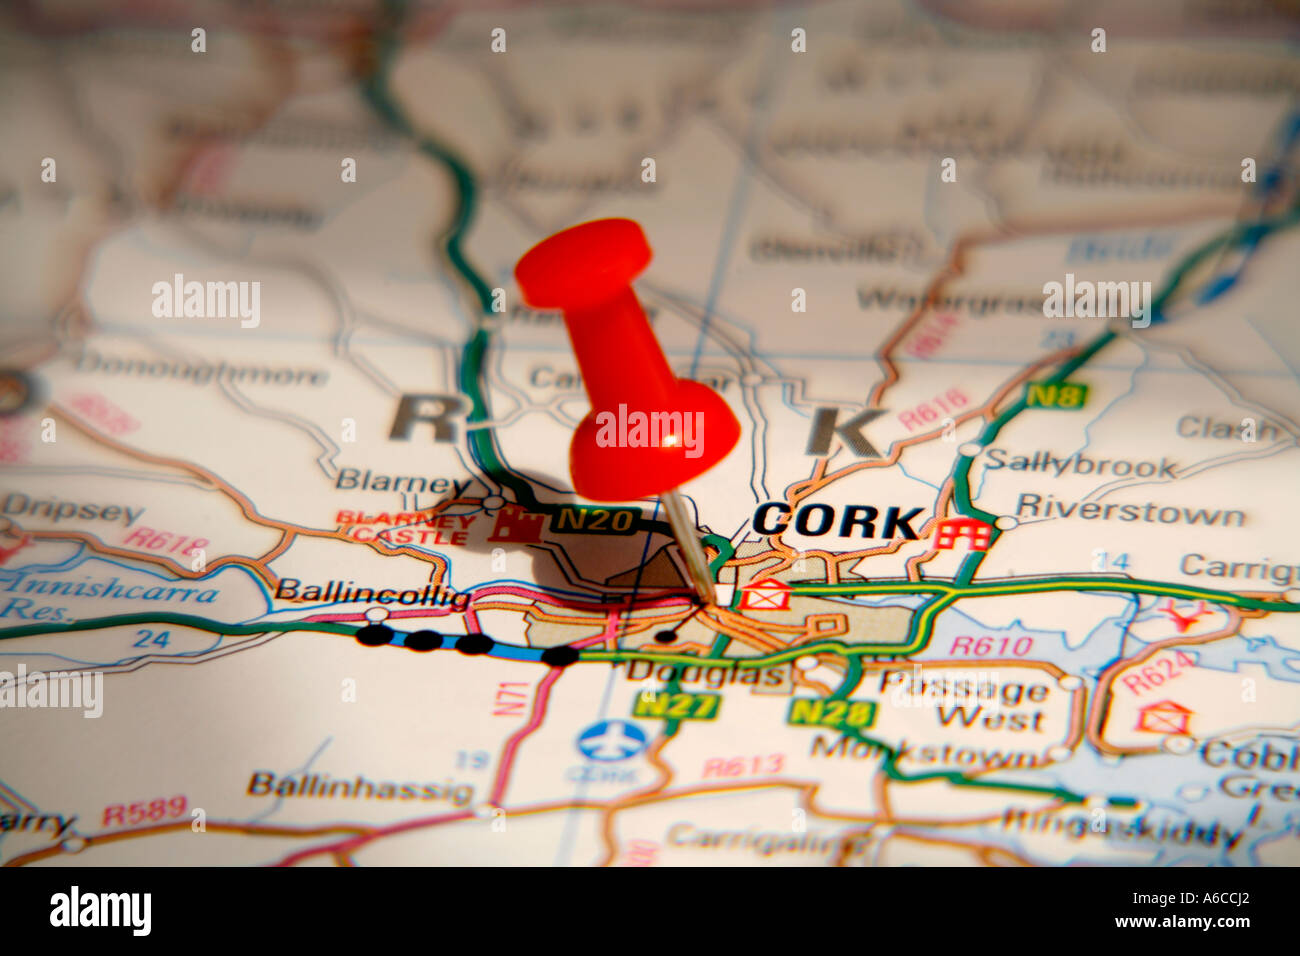 Map pin pointing to cork ireland on a road map stock photo map pin pointing to cork ireland on a road map gumiabroncs Image collections